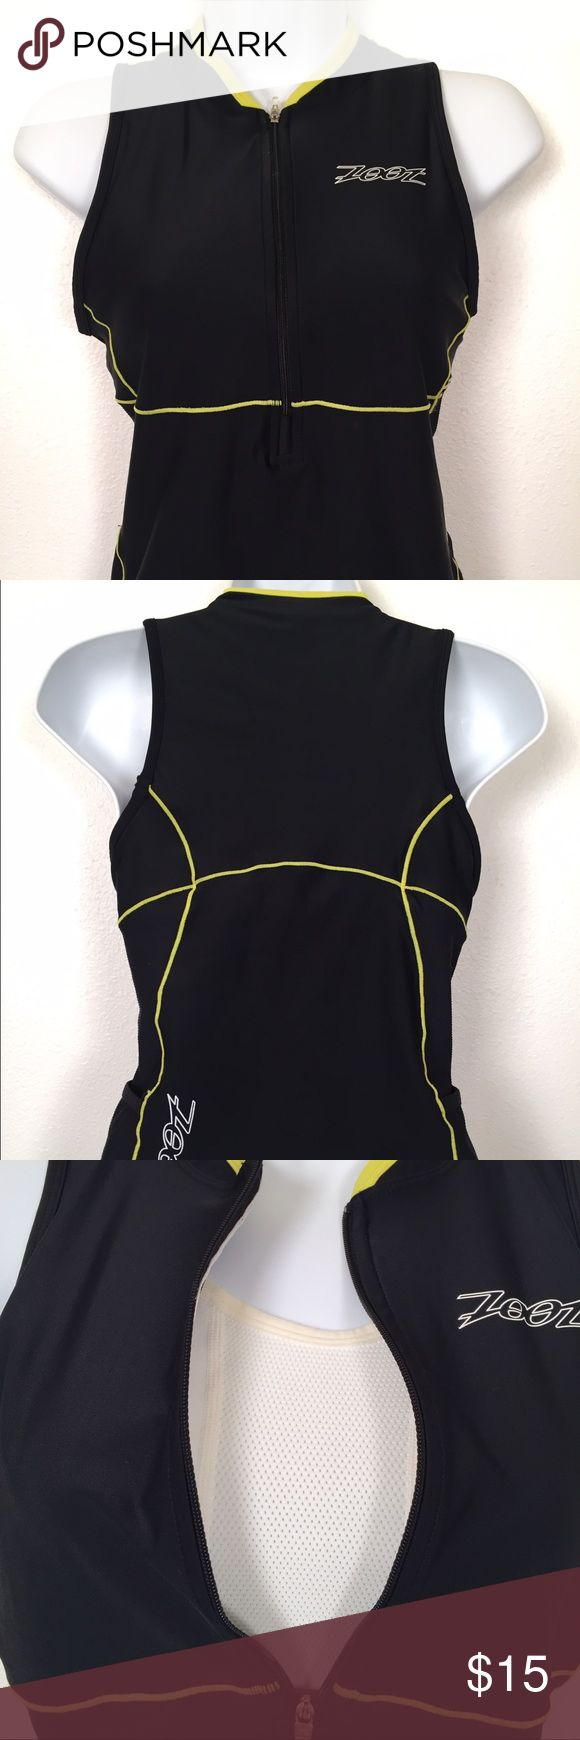 "NOW ON SALE Zoot triathlon Mesh Tank Women's medium triathlon mesh tank Performance Endura fabric helps you stay dry. Dual side pockets for nutrition storage 9""camlock zipper with soft finish zipper  Complete bra w/no padding or underwire. Measurements  bust 35 to 37"" Waist 28 to 30"" Hips 37 to 39  Excellent condition Clean and ready to wear No stains, snags or damage Comes from a pet free smoke free environment Not the right size , color or style you're looking for check out Molly's closet…"